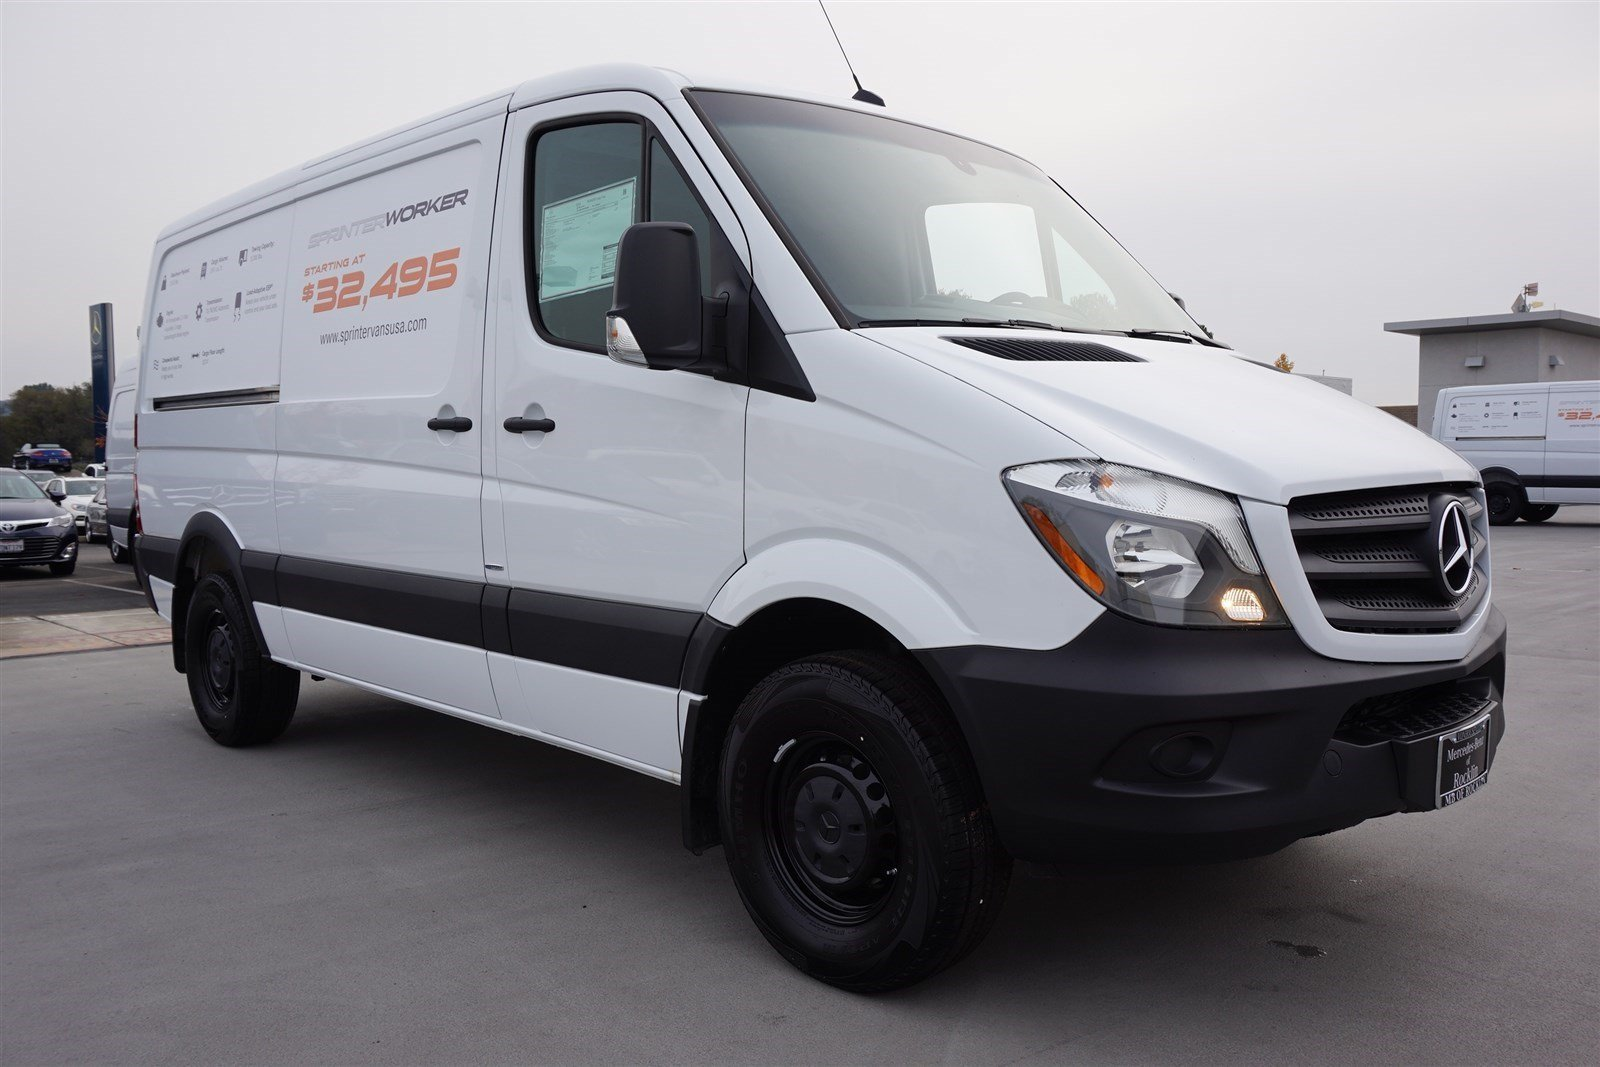 New 2016 Mercedes Benz Sprinter Cargo Vans Worker Full